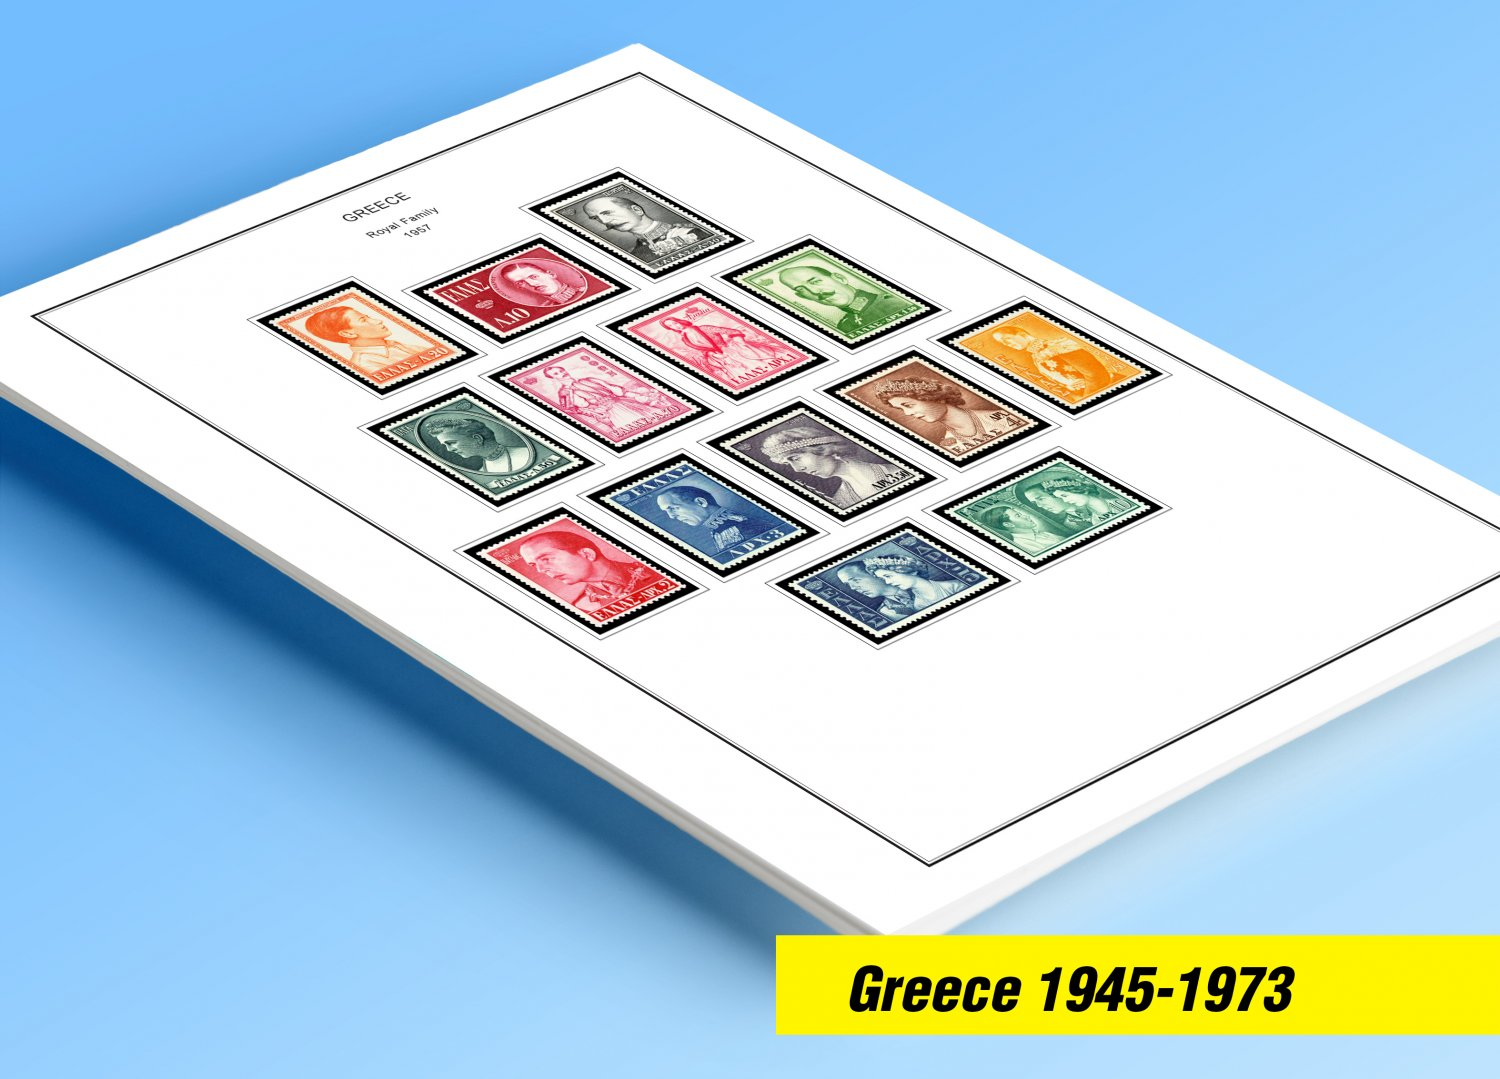 COLOR PRINTED GREECE [KINGDOM] 1945-1973 STAMP ALBUM PAGES (66 illustrated pages)